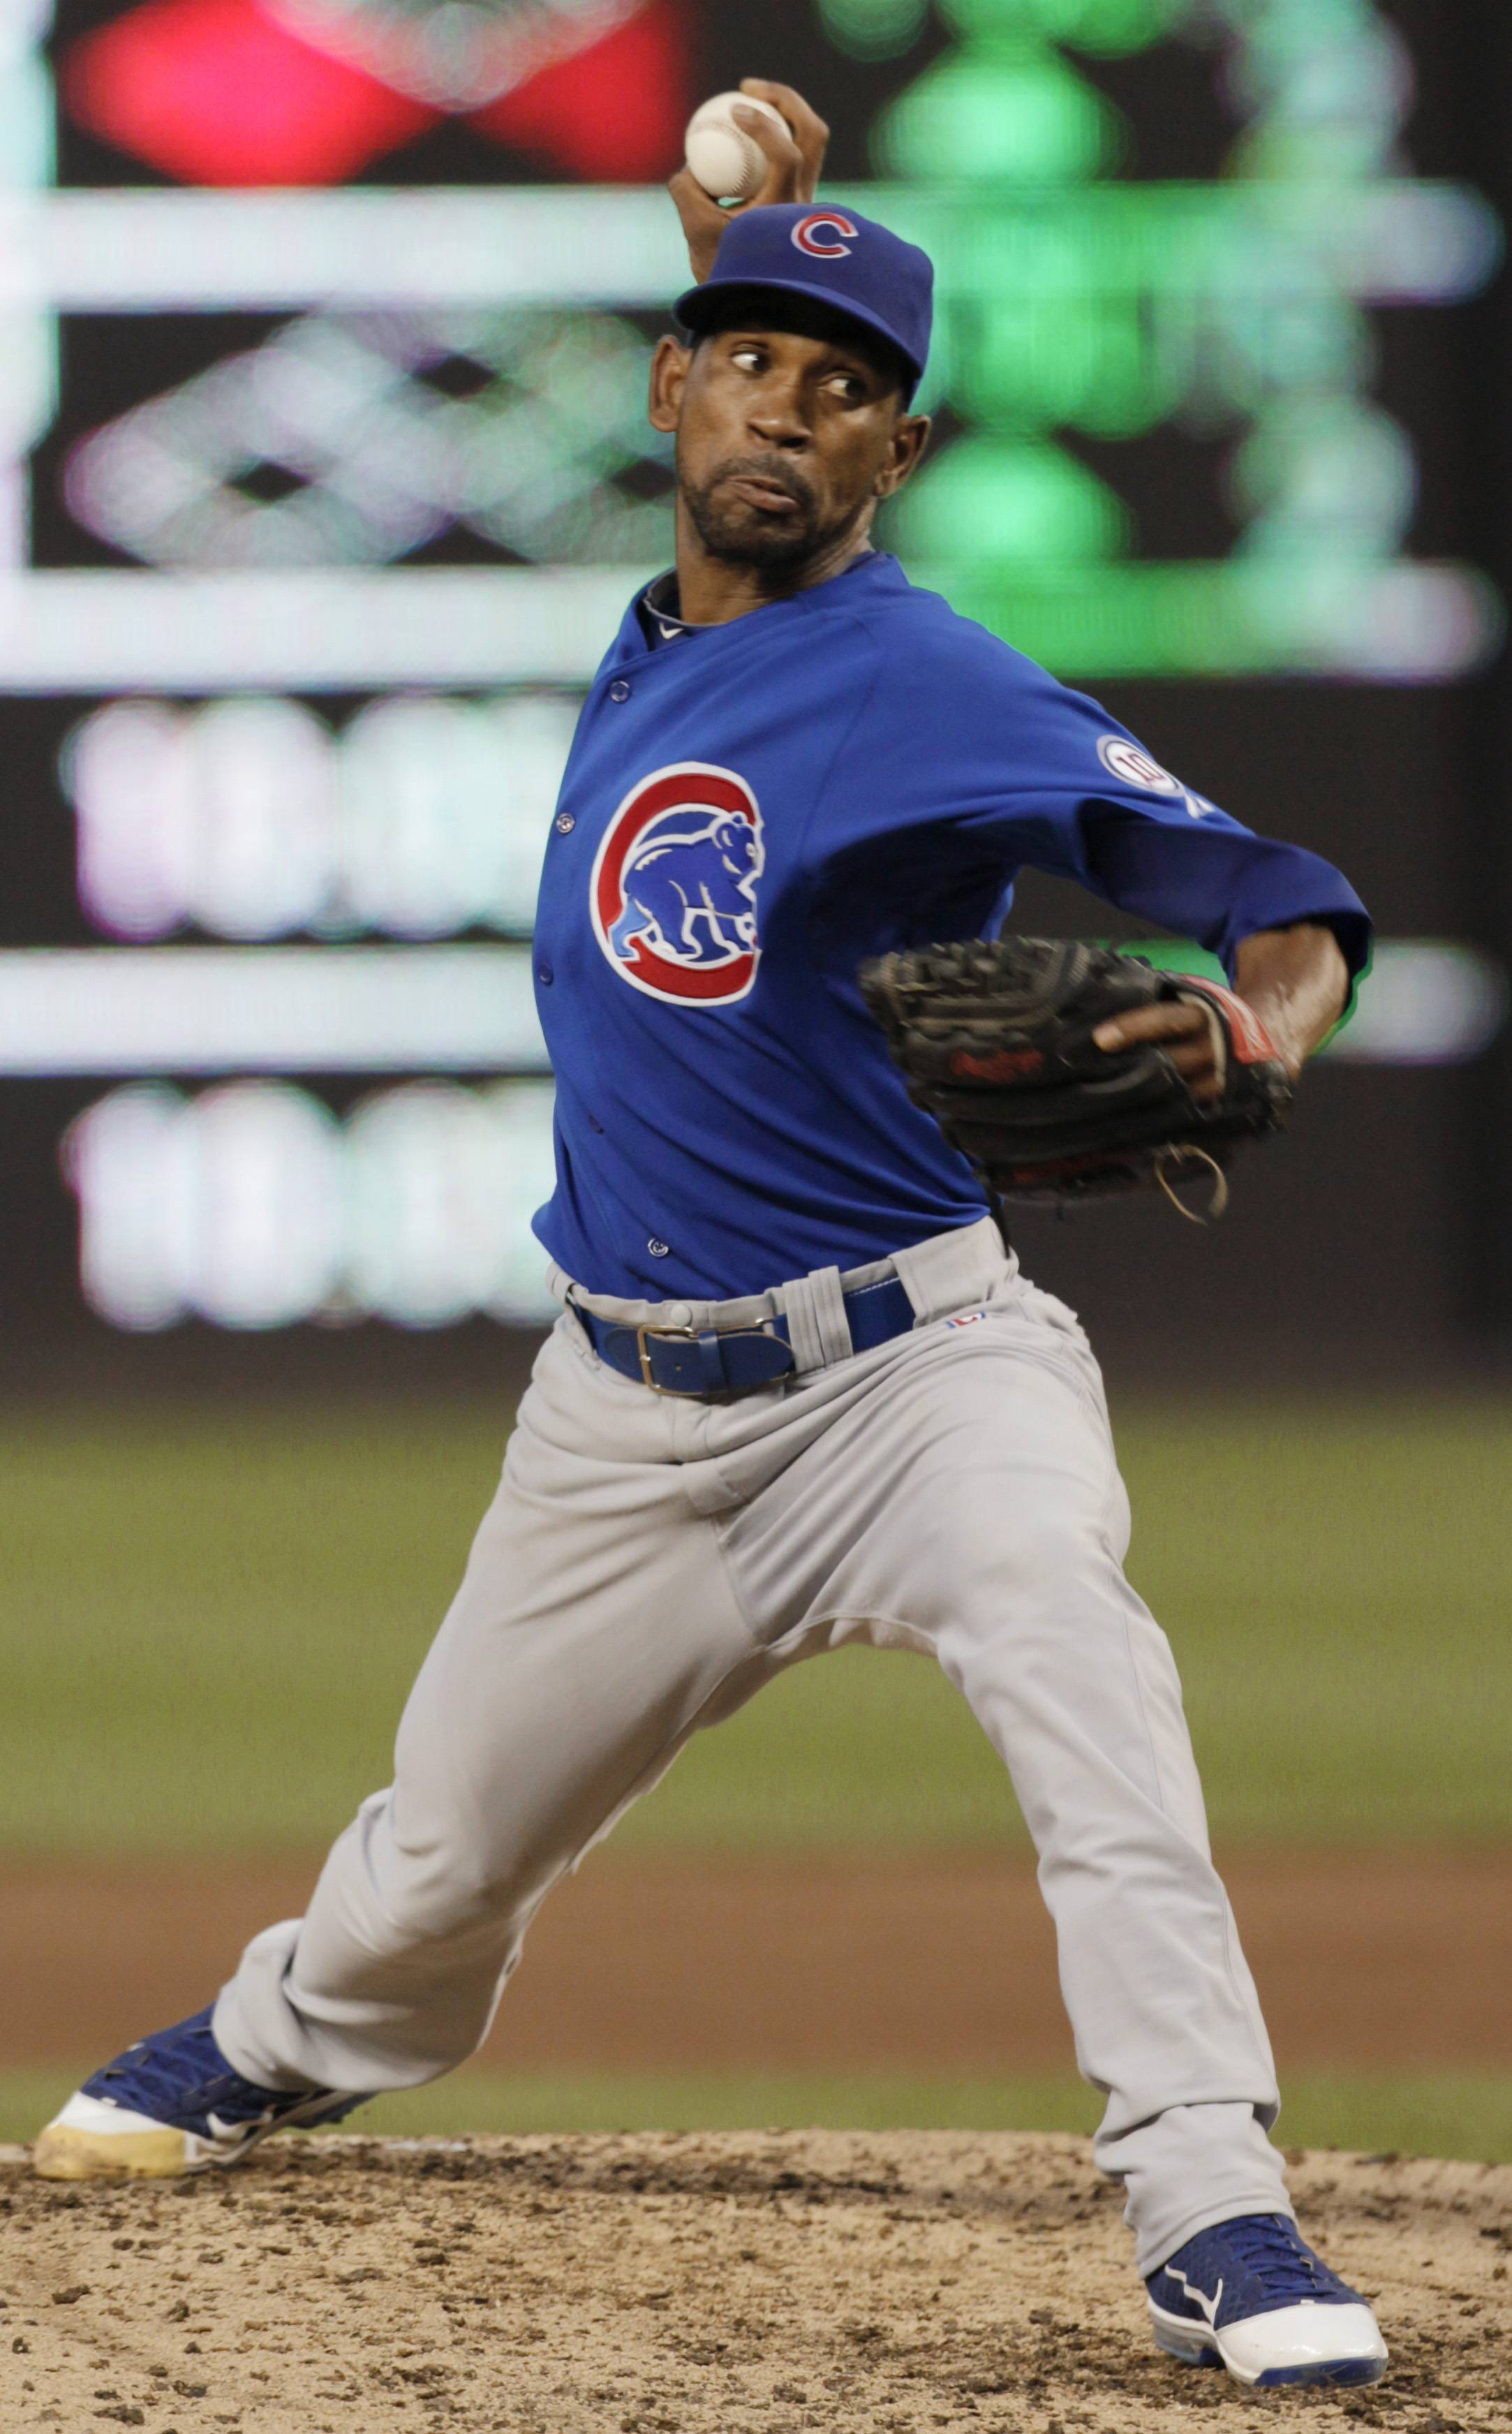 Ramon Ortiz was the 10th different pitcher to start a game for the Cubs this season.